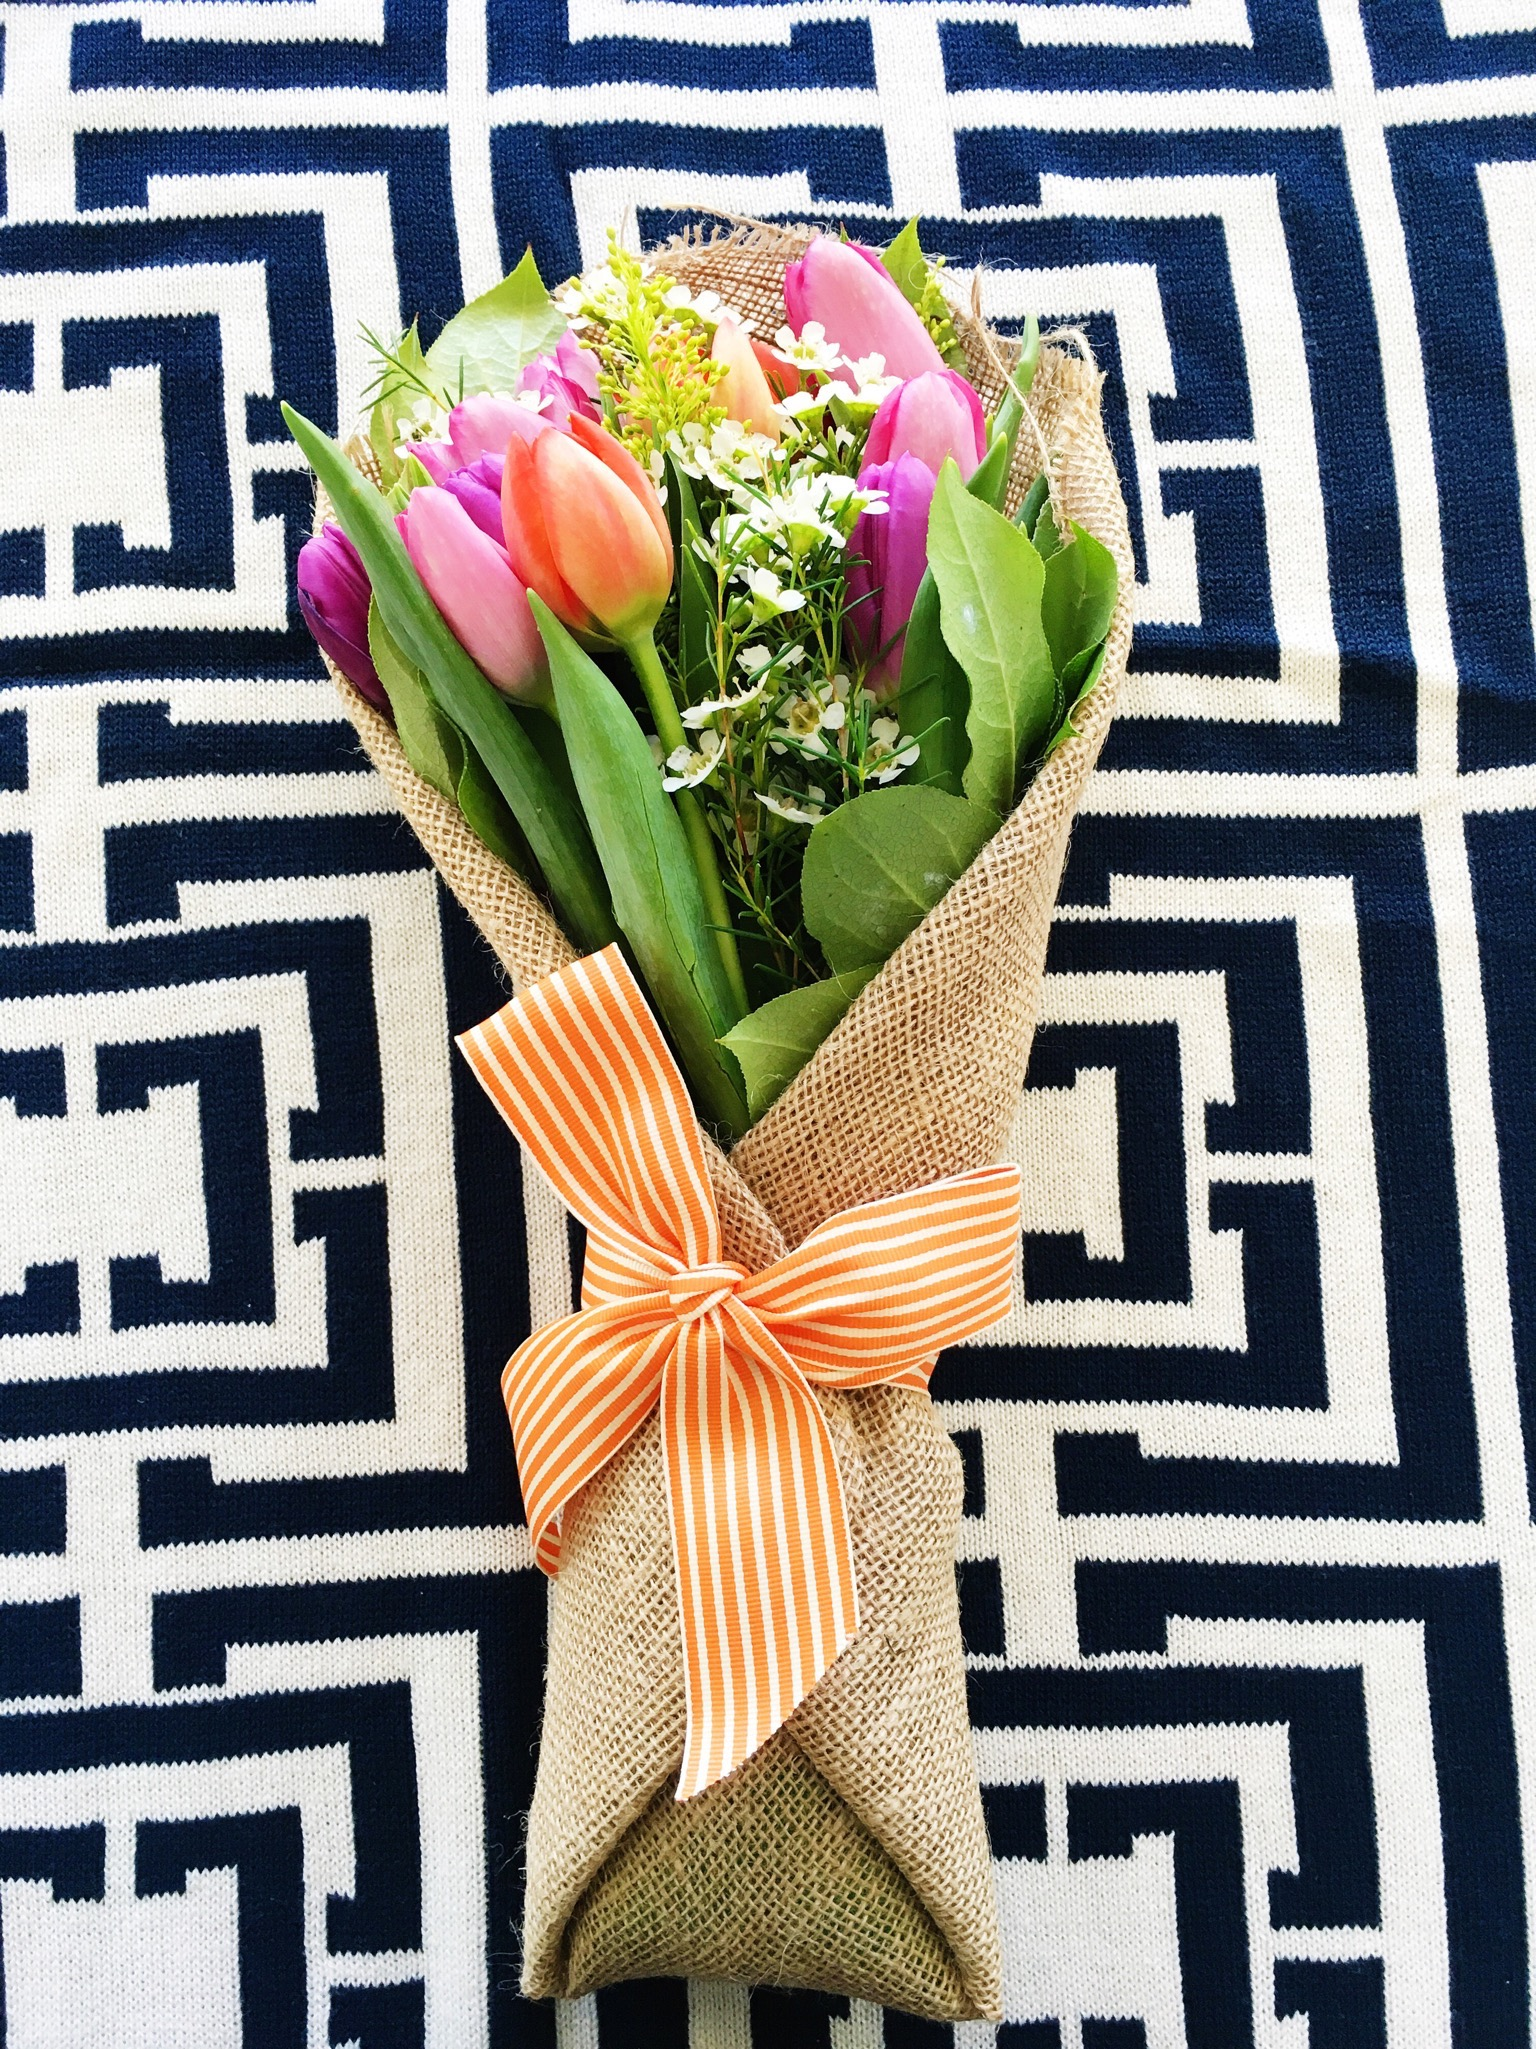 Bloom That offers stylish bouquets delivered right to your door - I featured this bouquet recently on instagram and have really been pleased to find a fresh new flower delivery service!